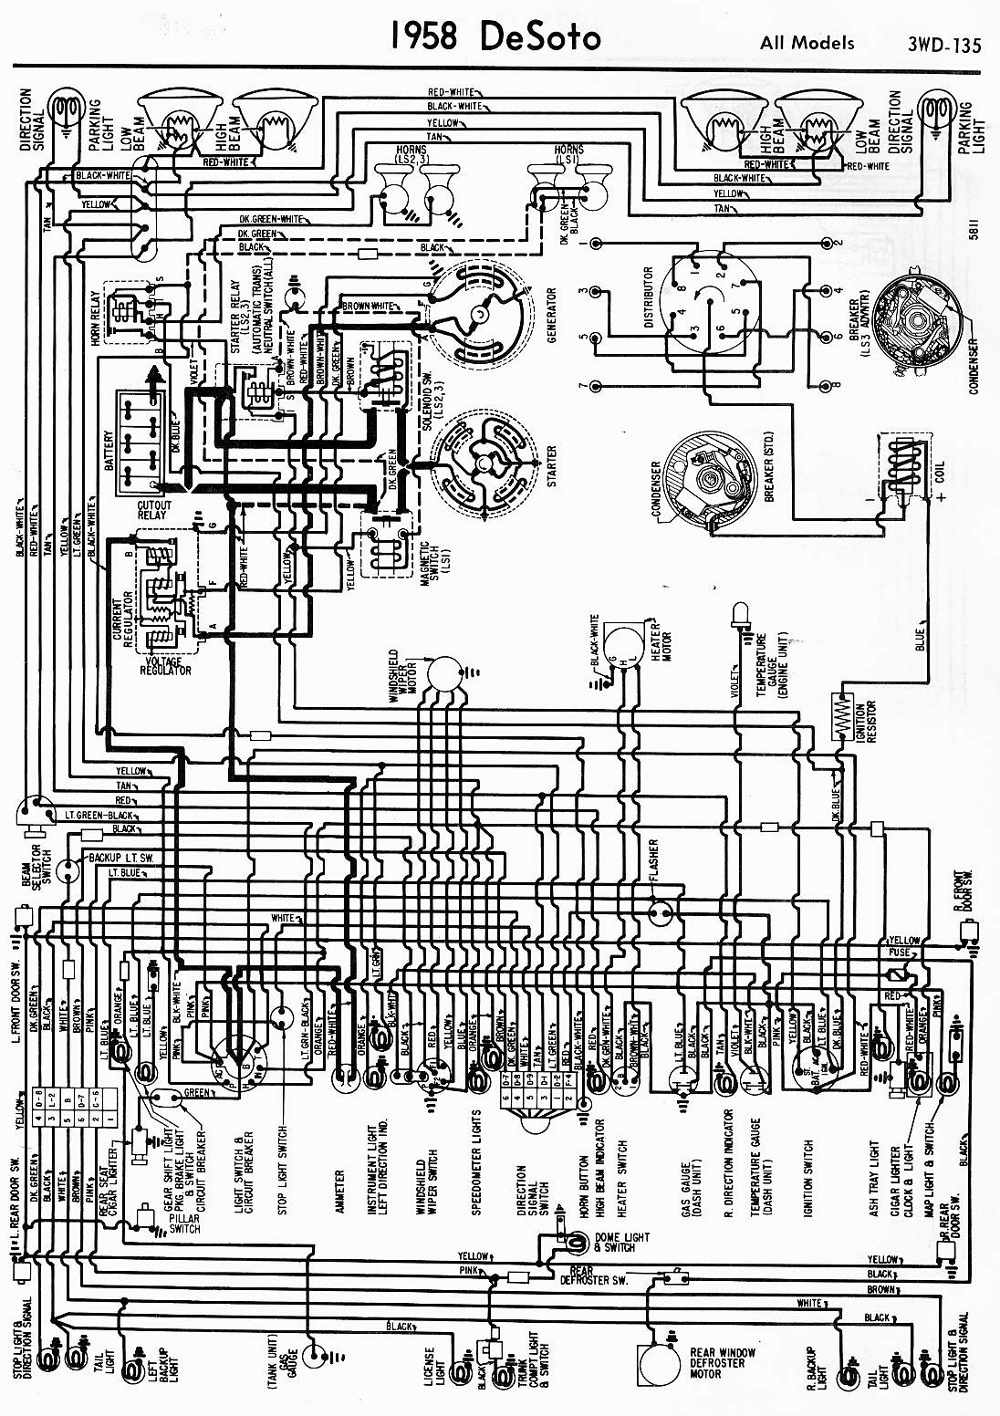 2006 Buick Century Starter Wiring Diagram 41 Images 04 Pacifica Free Picture Schematic Chrysler Diagrams Of 1958 Desoto All Modelst1508403756 1941